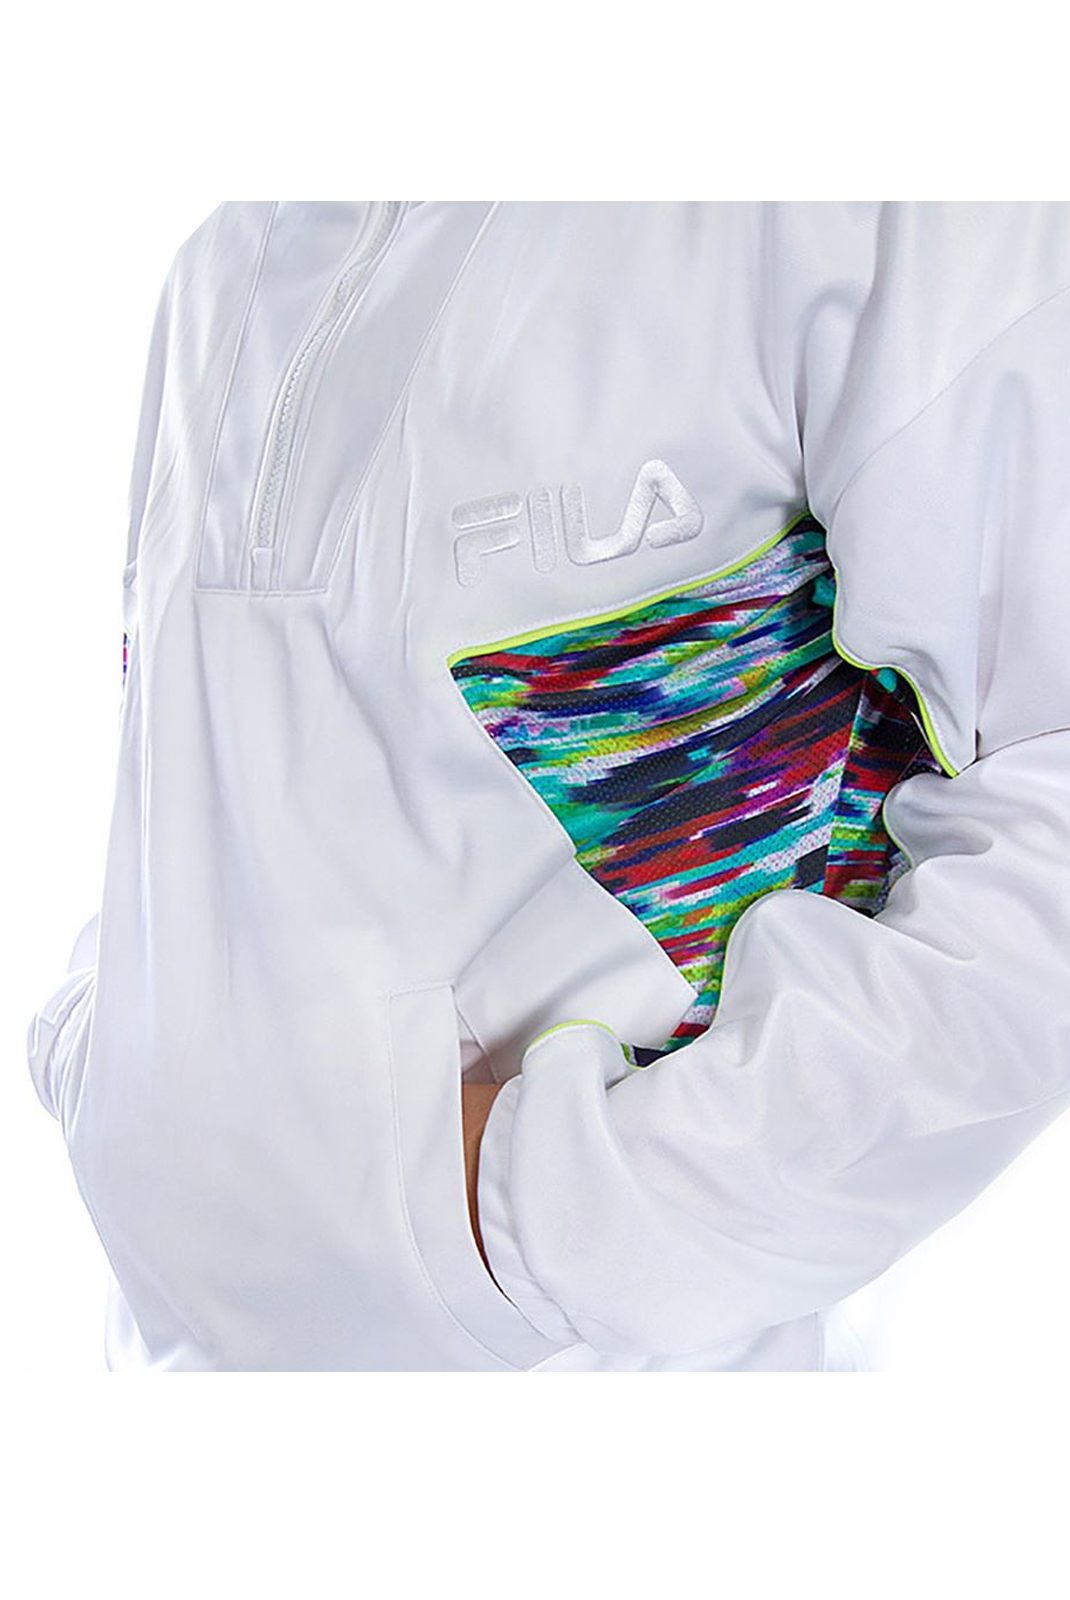 Sweatshirts  Fila 684484 RALLY OIL 01 WHITE